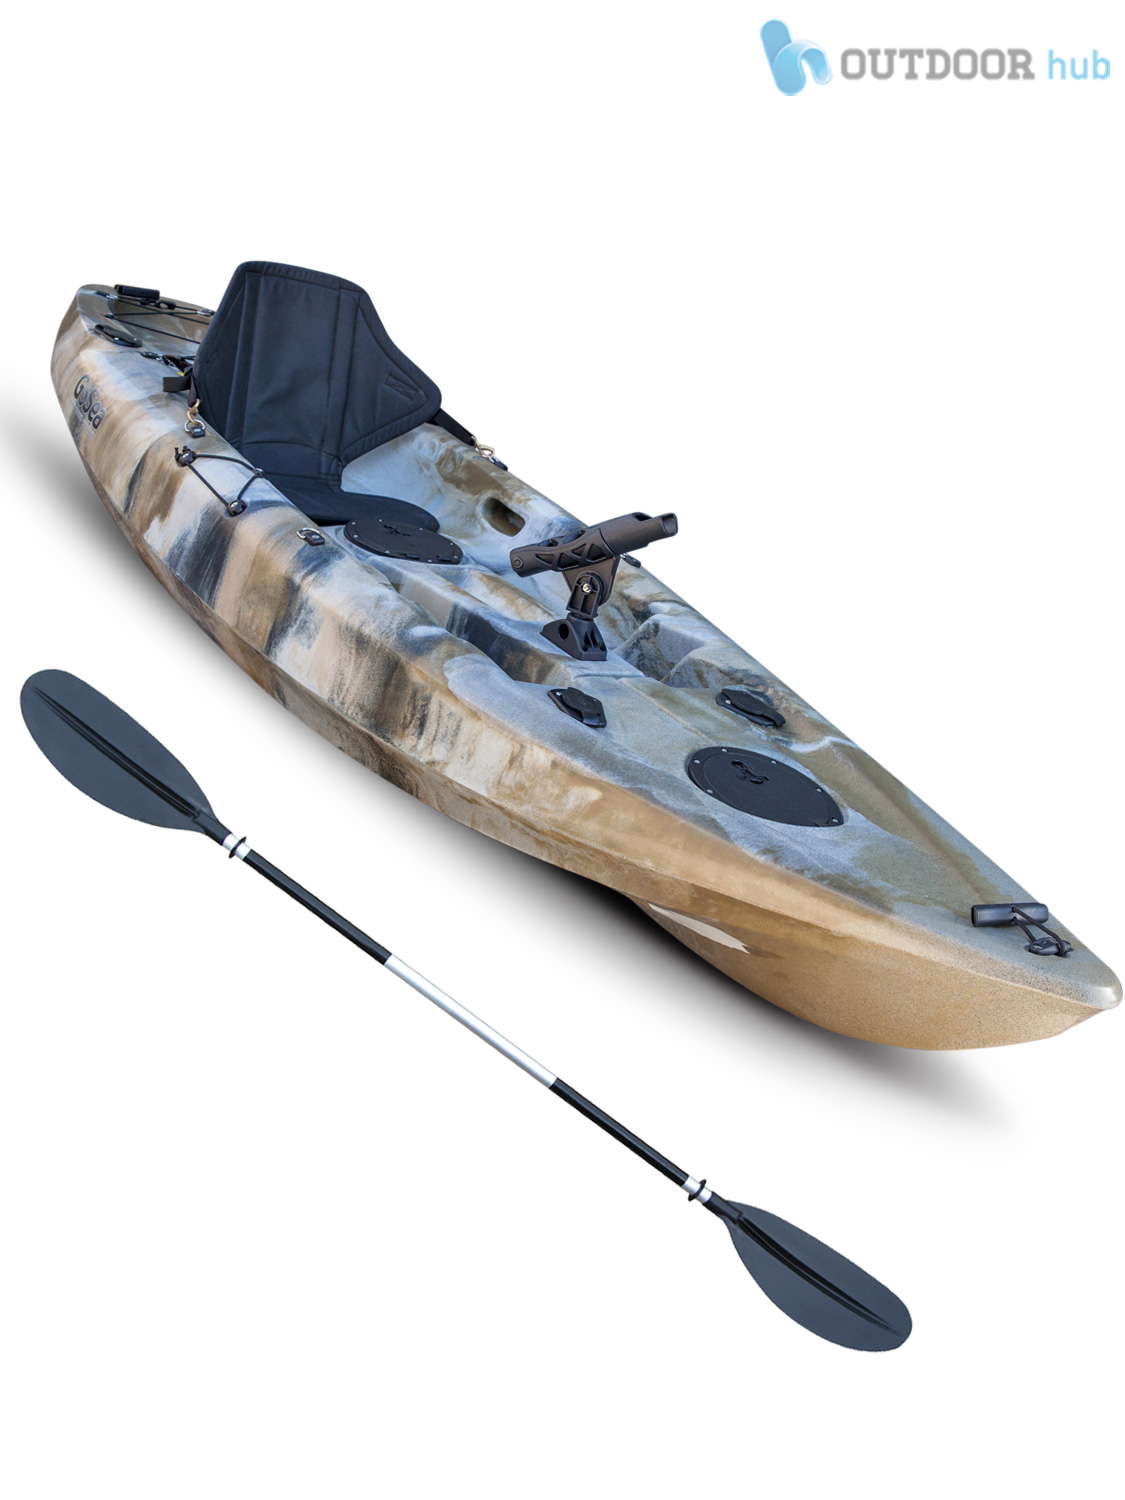 Sit on top kayak single fishing ocean canoe gosea angler for Sit on vs sit in kayak for fishing